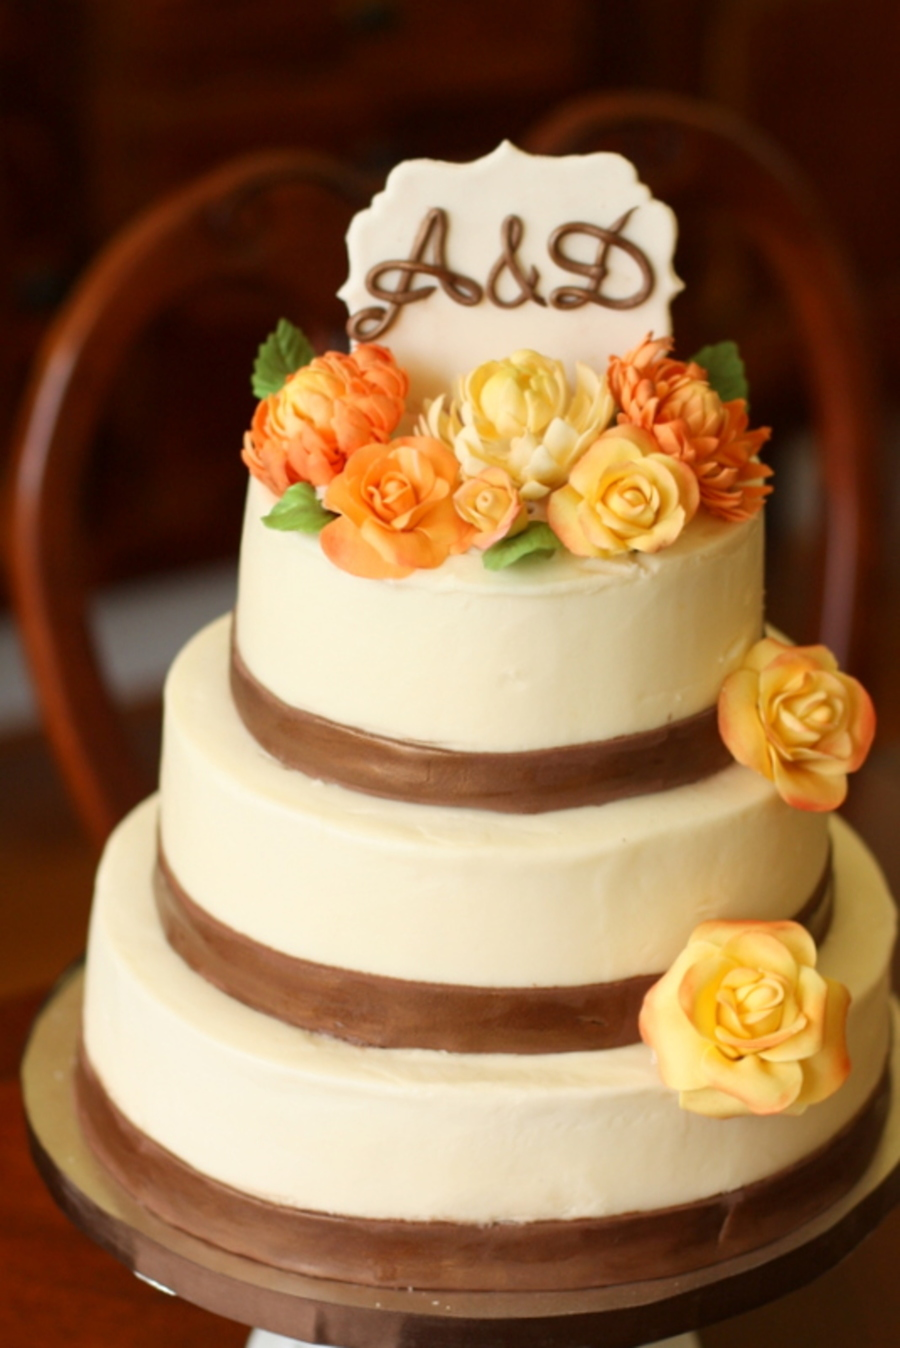 Rustic Fall Themed Wedding Cake Everything On The Cake Is Edible